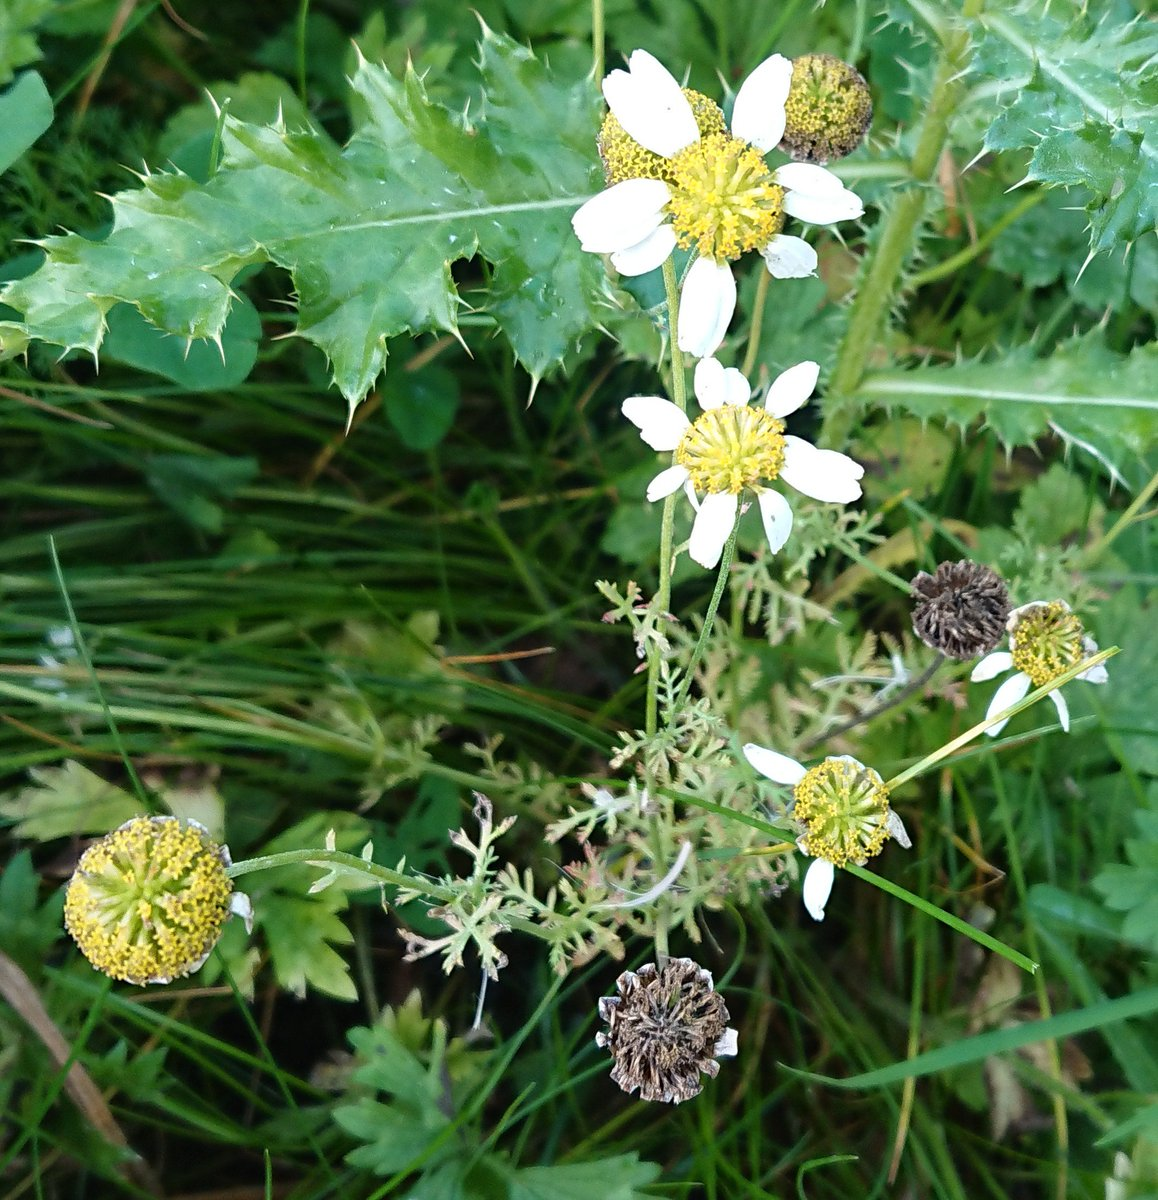 A worse for ware stinking chamomile, anthemis cotula, among the thistles. #wildflowerhour <br>http://pic.twitter.com/k6d2NZ12aW